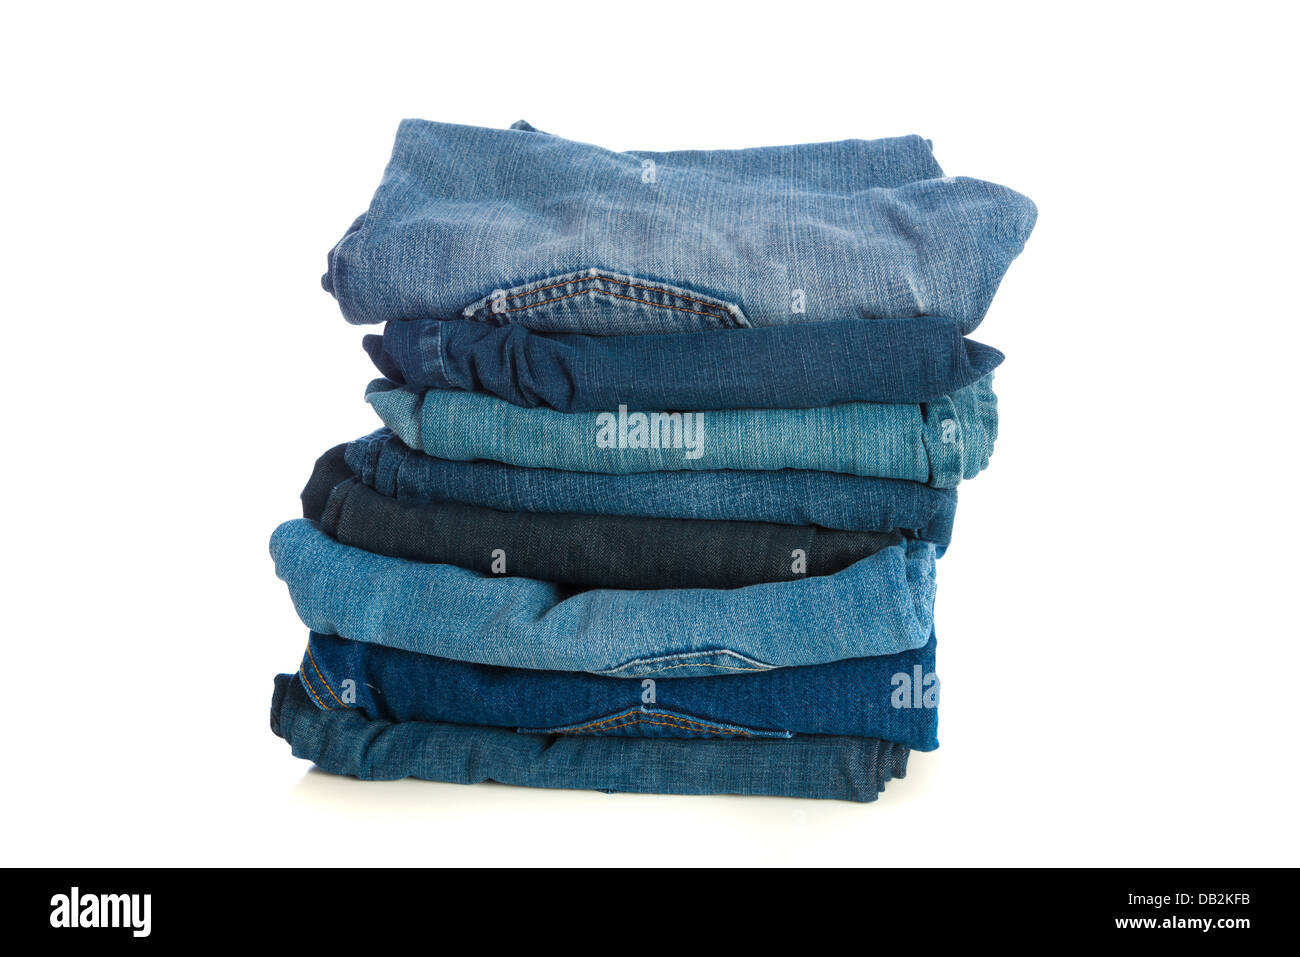 Stack of old blue jeans on a white background - Stock Image